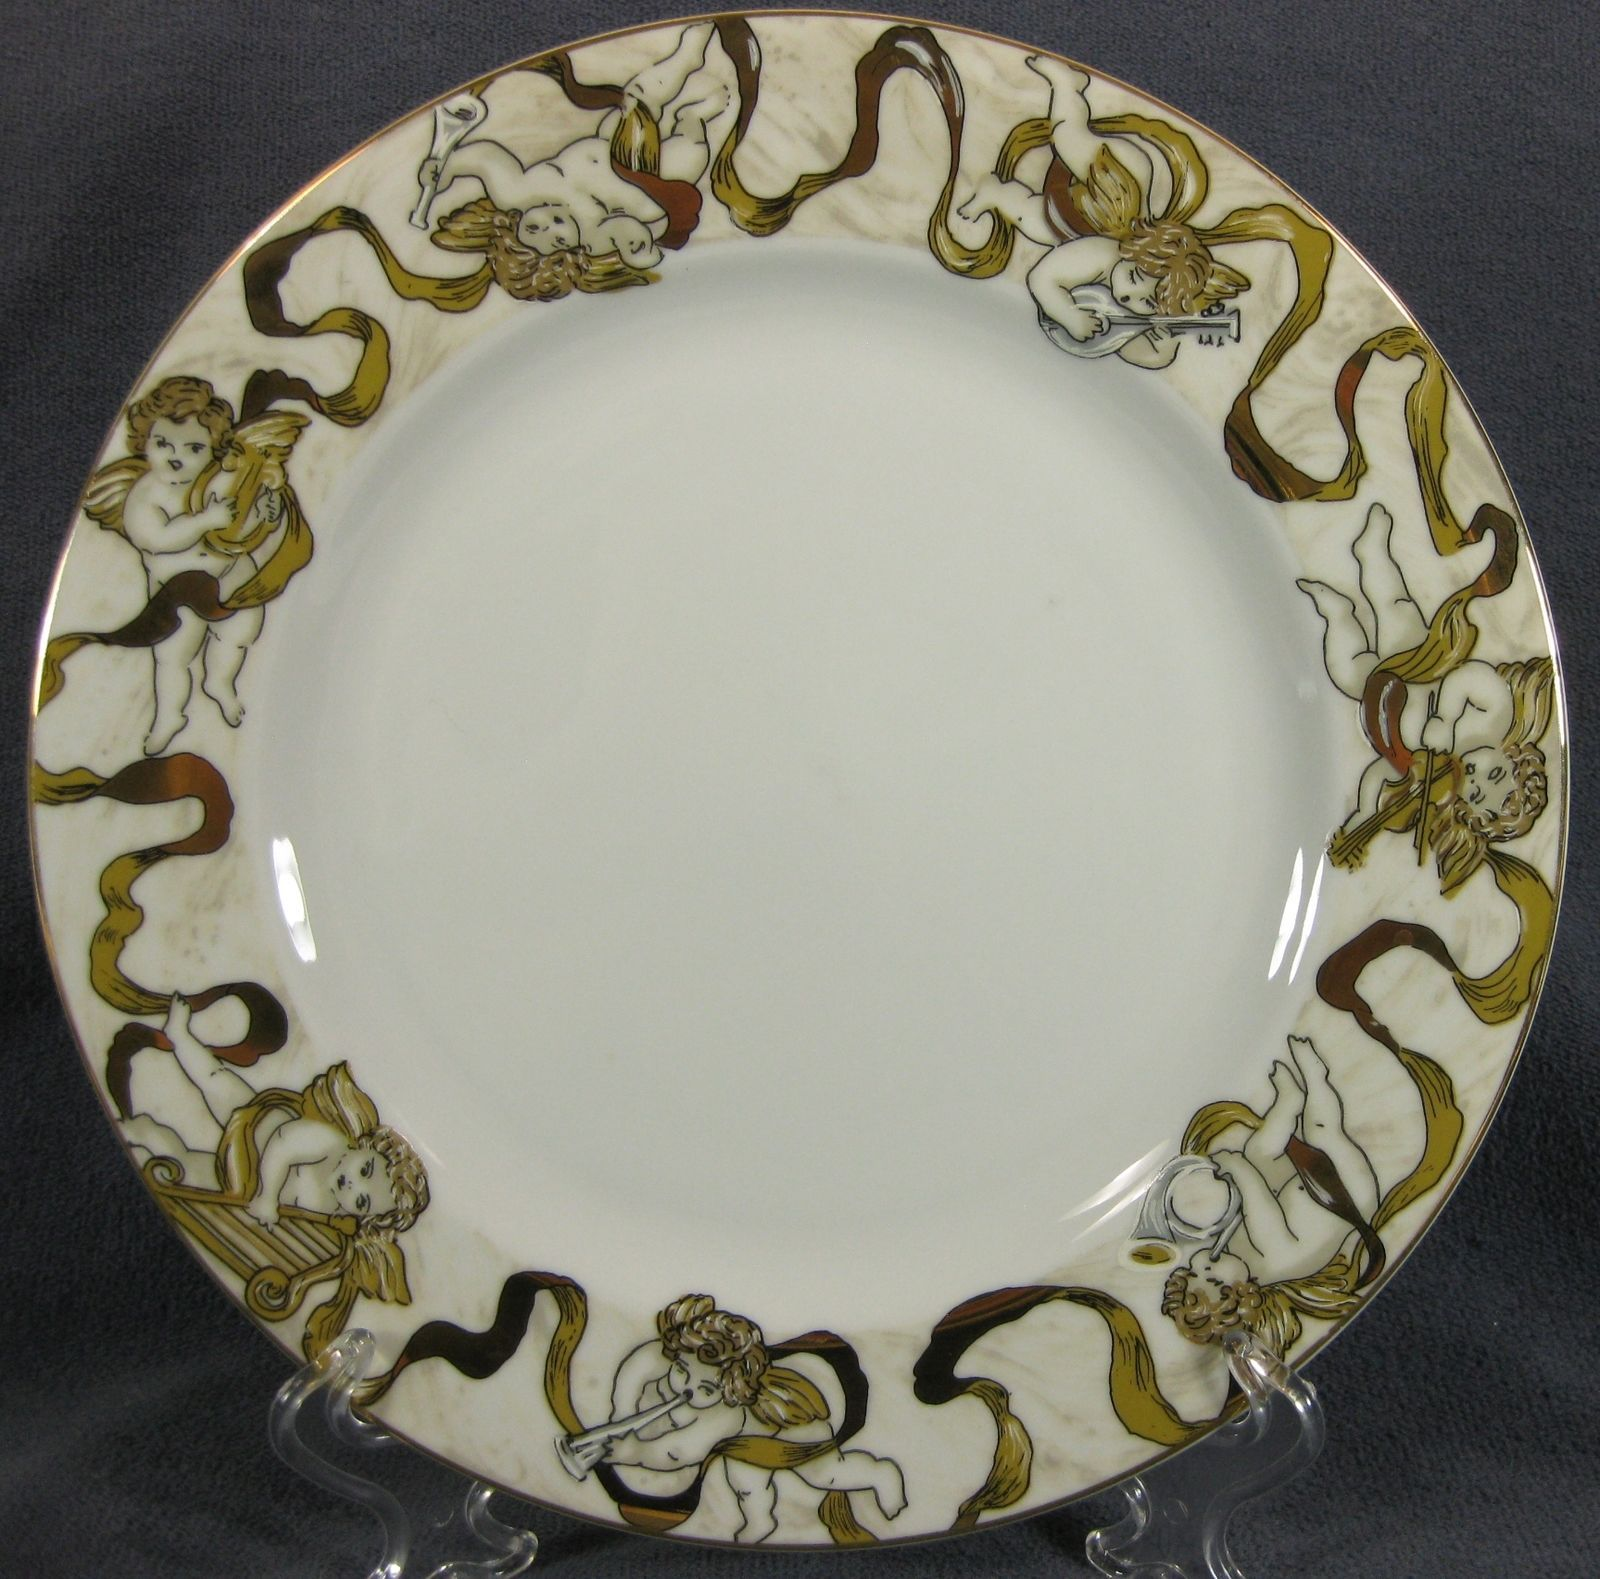 Primary image for American Atelier Heavenly Hosts 3373 Dinner Plate Cherubs Golden Ribbon 10 5/8""